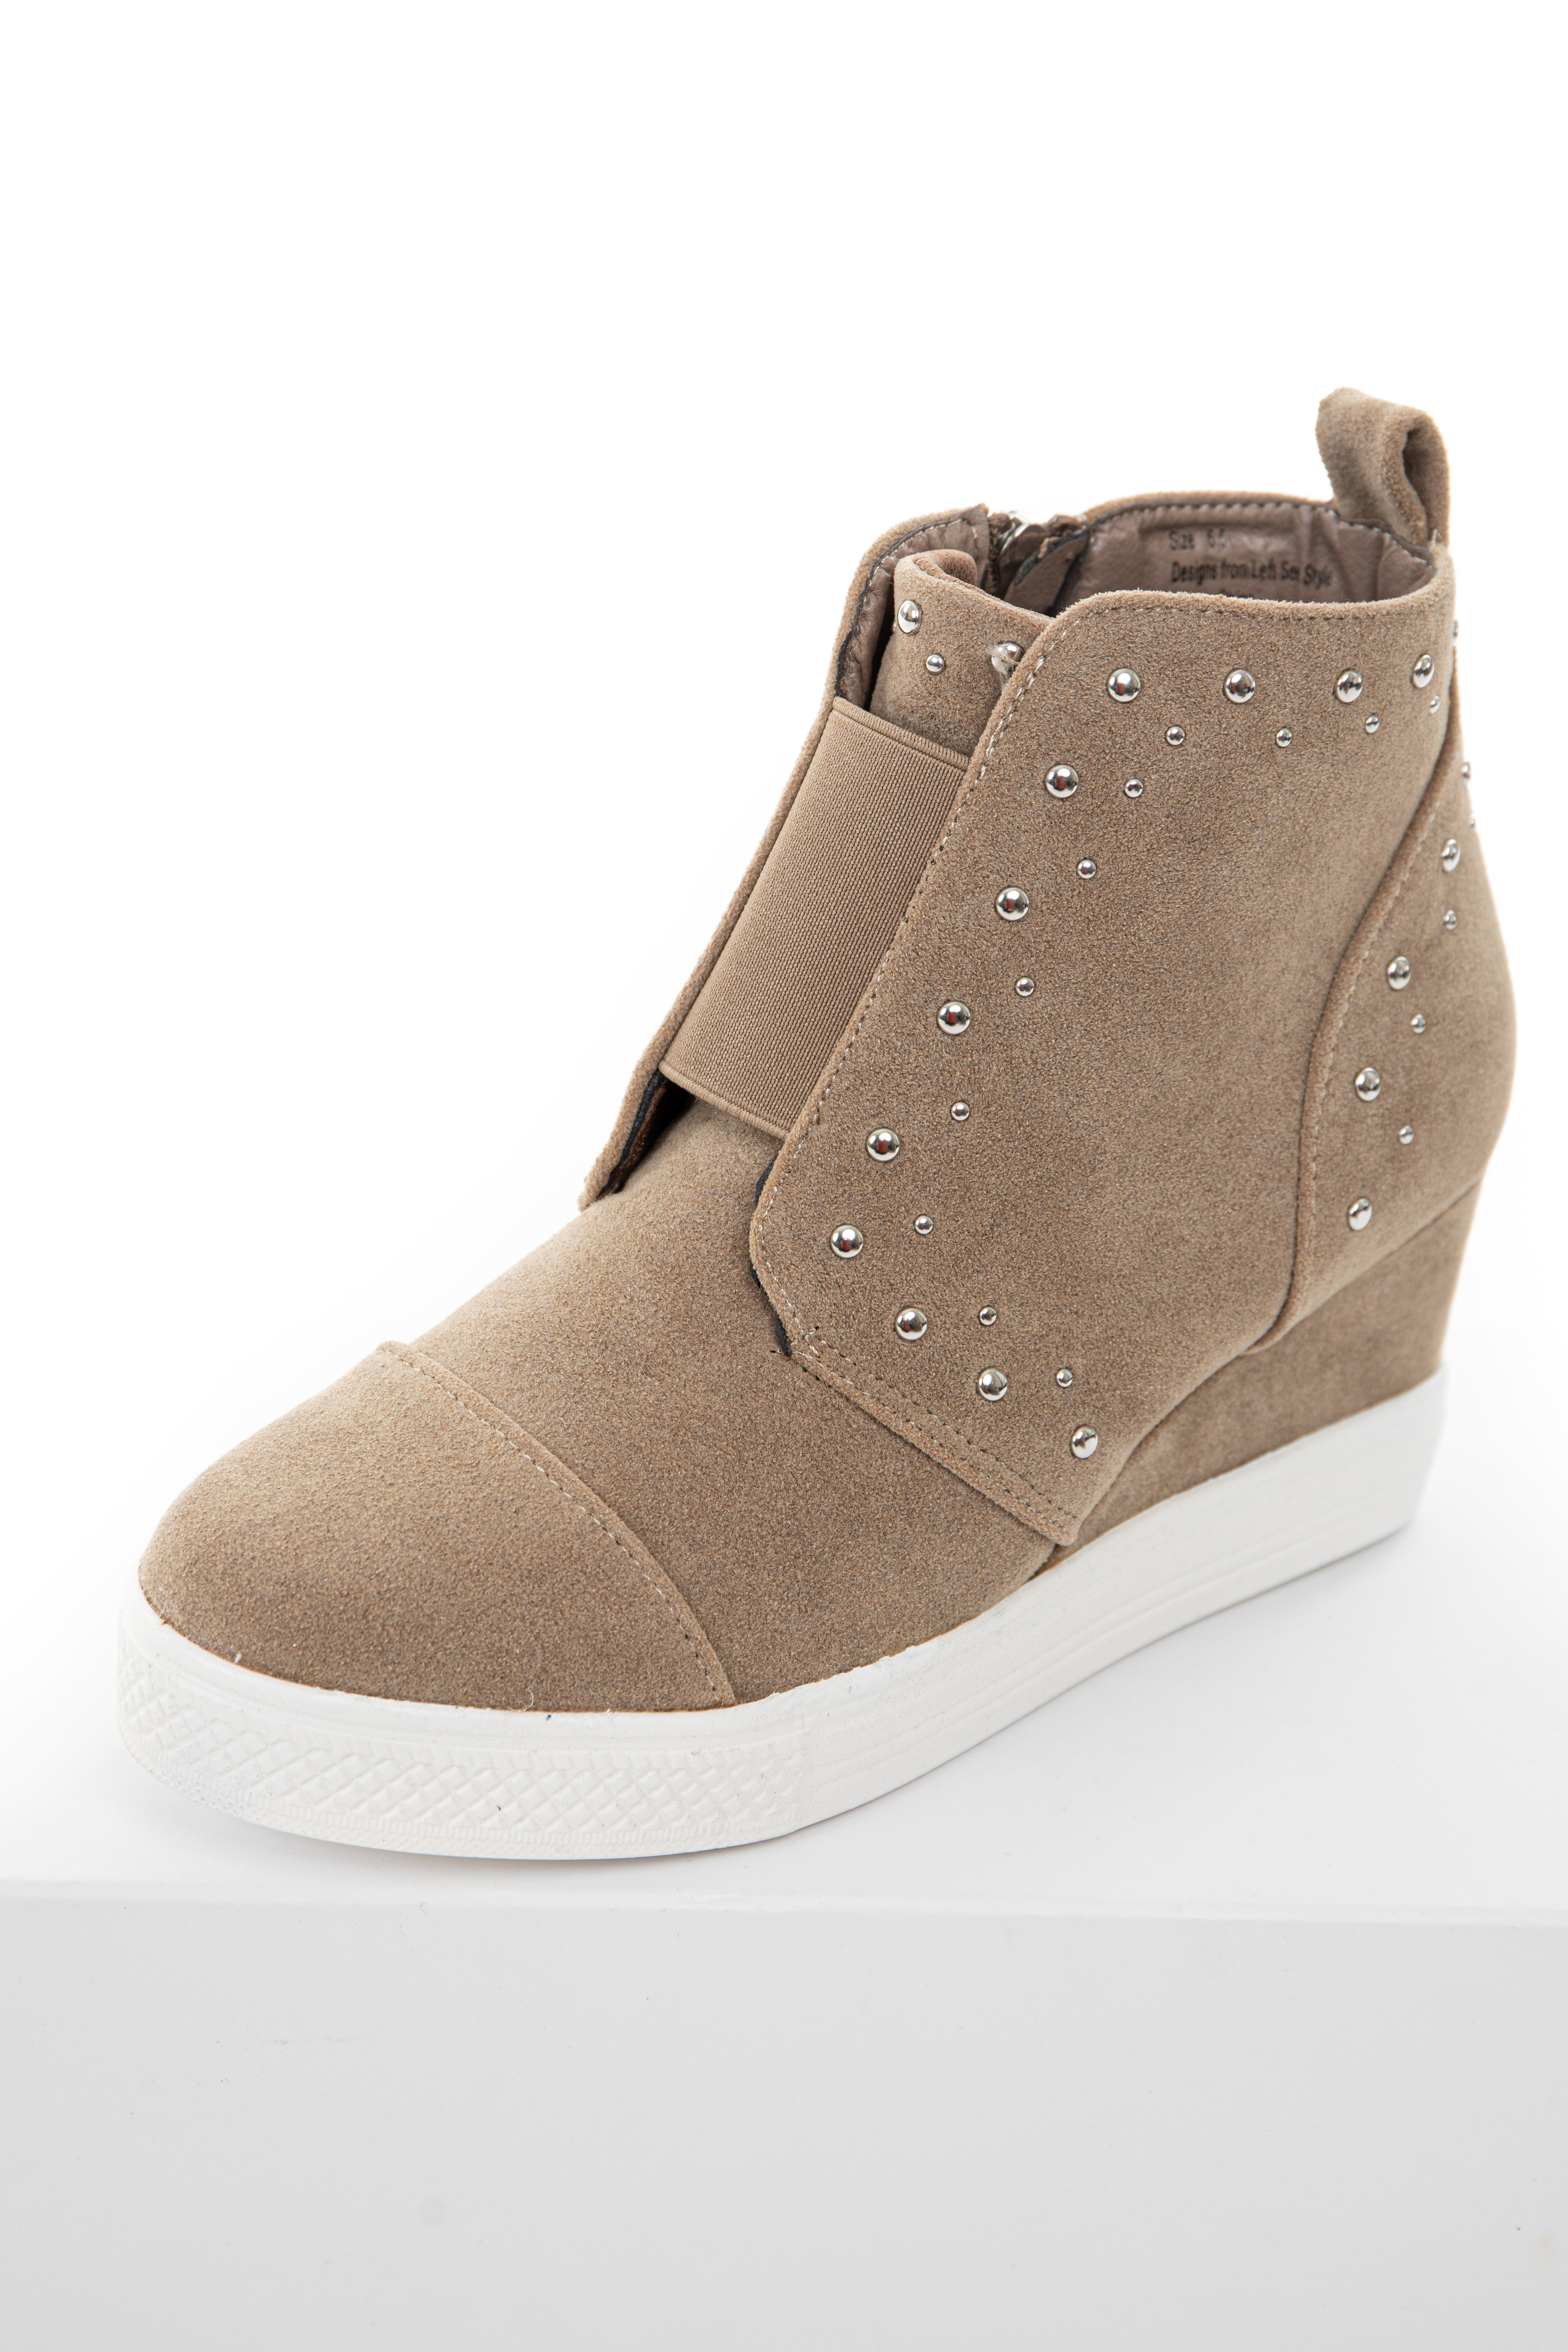 Khaki Faux Suede Wedge Sneakers with